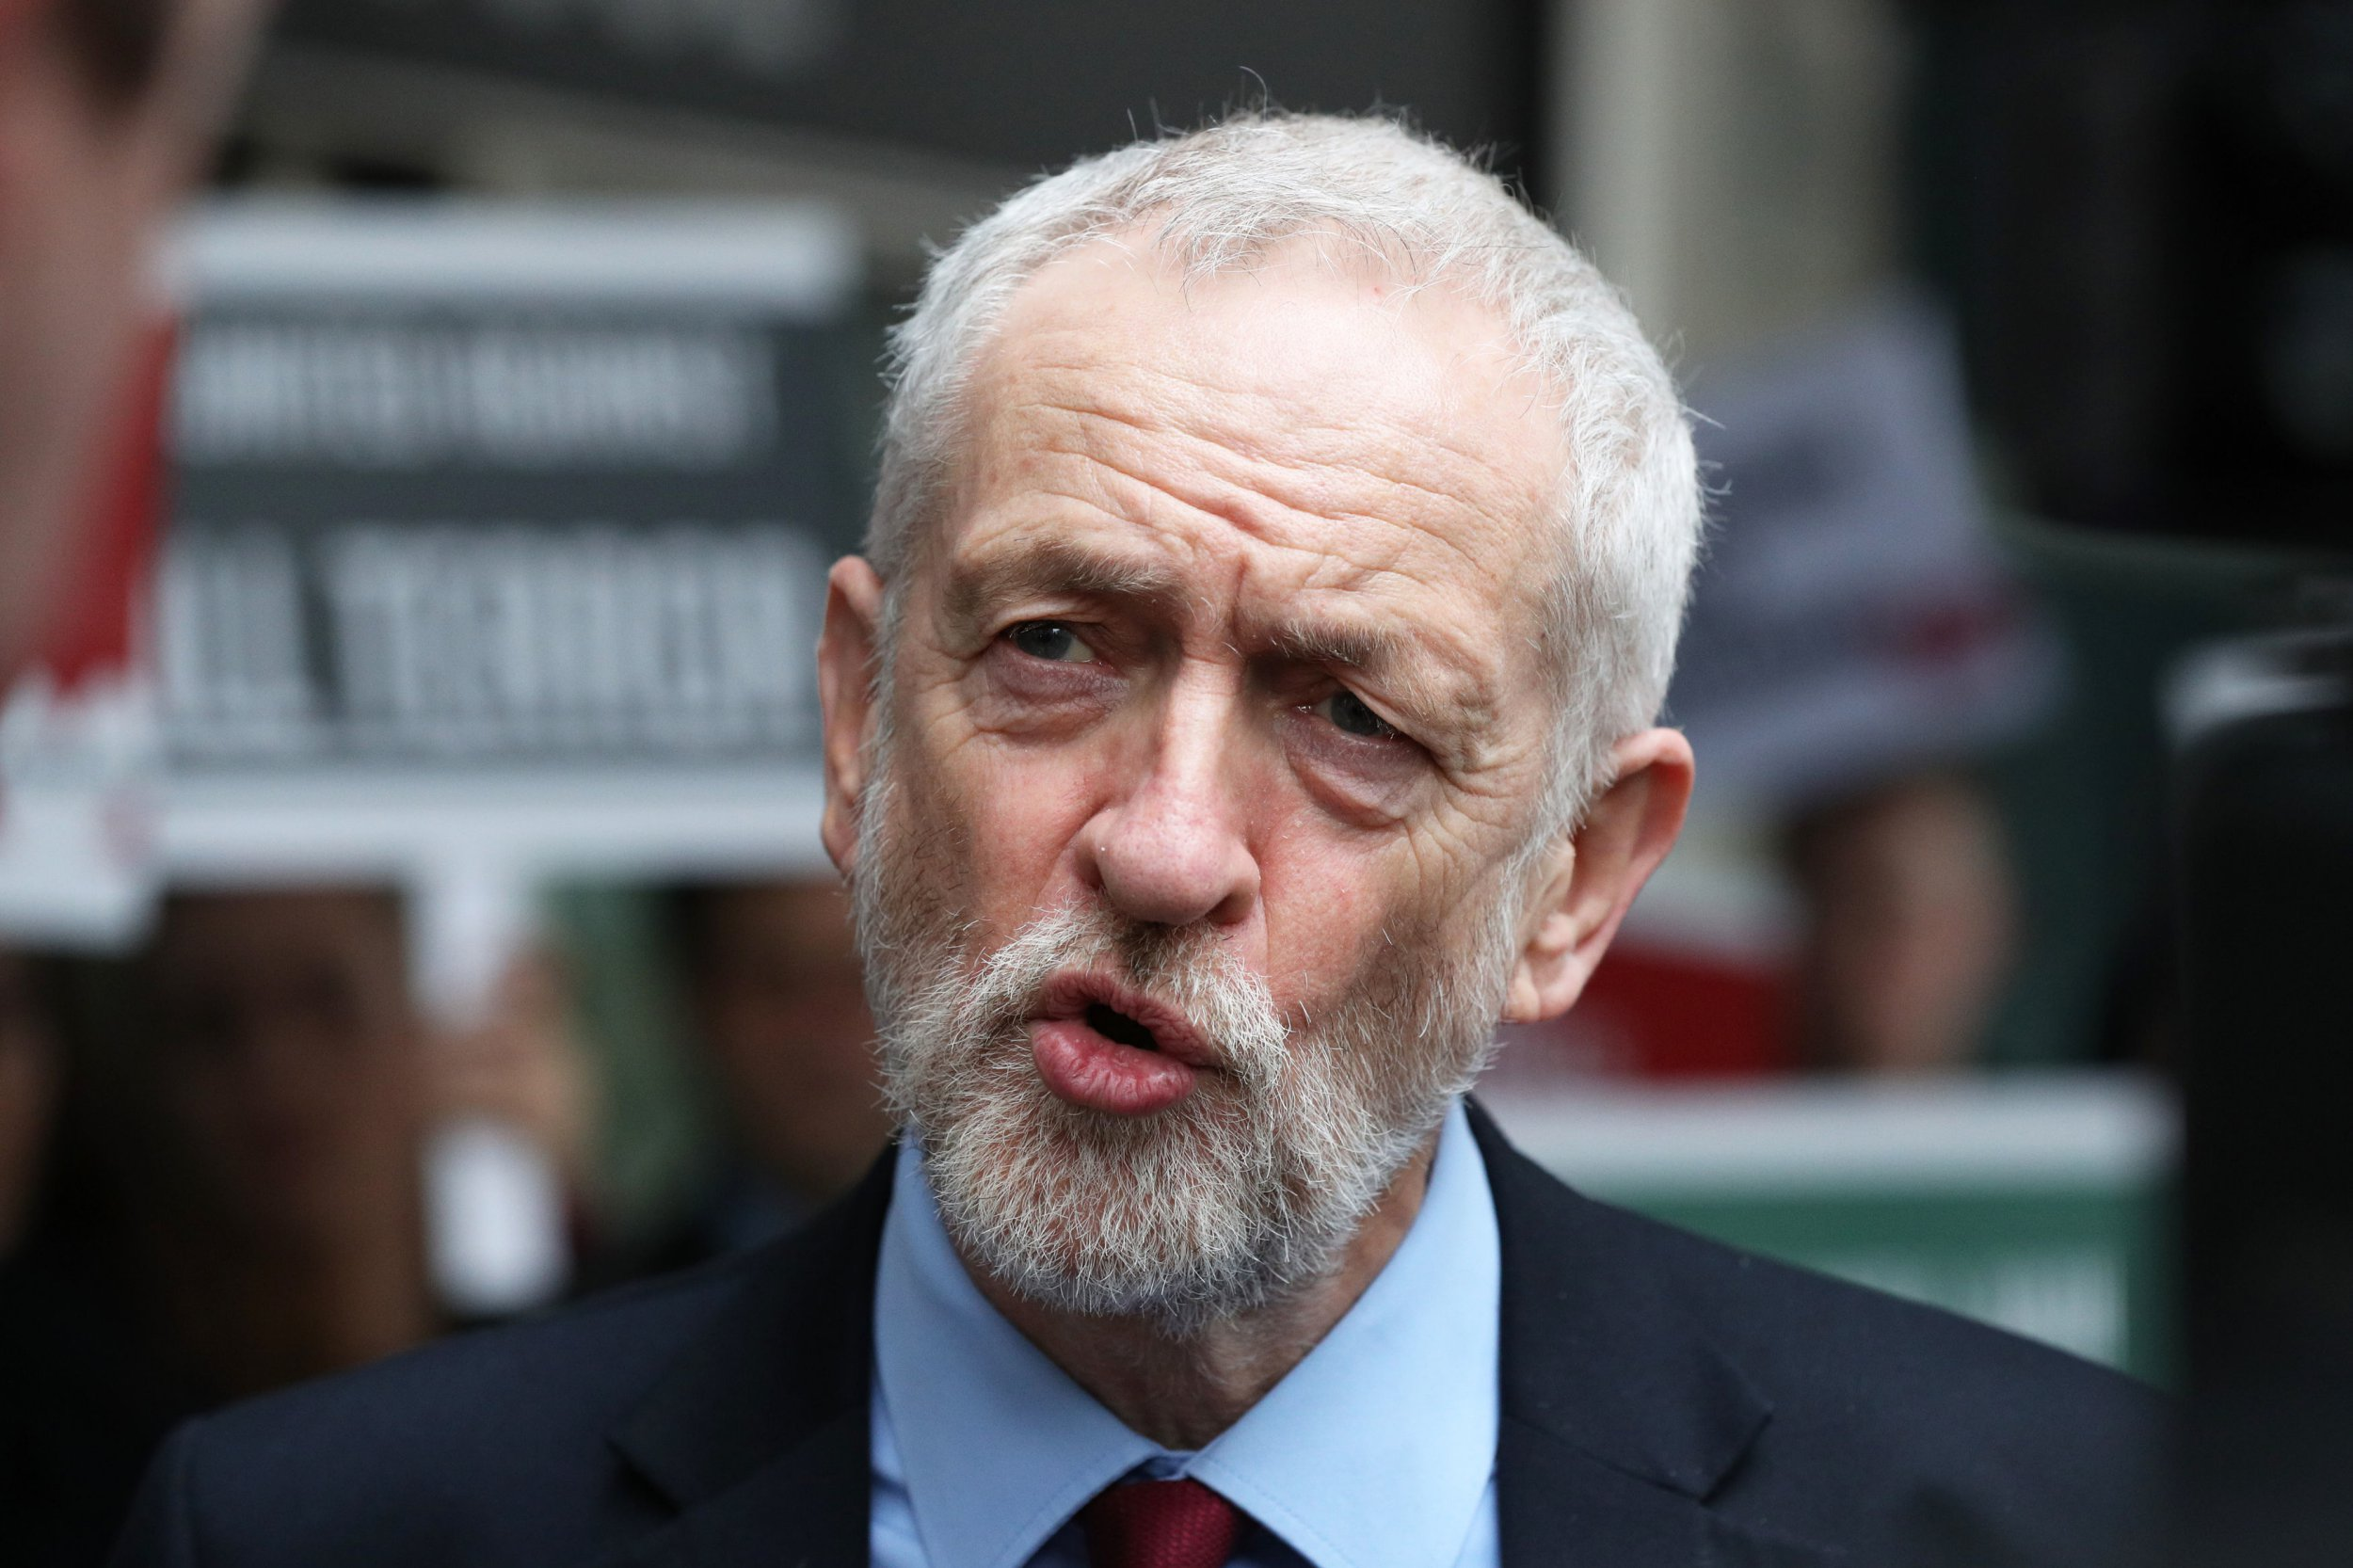 "File photo dated 15/3/2019 of Jeremy Corbyn, who has said it is right that members of the Armed Forces are held to account for incidents during the Troubles after a British soldier was charged with murder over Bloody Sunday. PRESS ASSOCIATION Photo. Issue date: Sunday March 17, 2019. The Labour leader said the ""law must apply to everyone"", and denied that there was a discrepancy between the investigations into soldiers after Republican suspects were sent ""comfort letters"" offering effective immunity from prosecution. See PA story ULSTER Corbyn. Photo credit should read: Jonathan Brady/PA Wire"